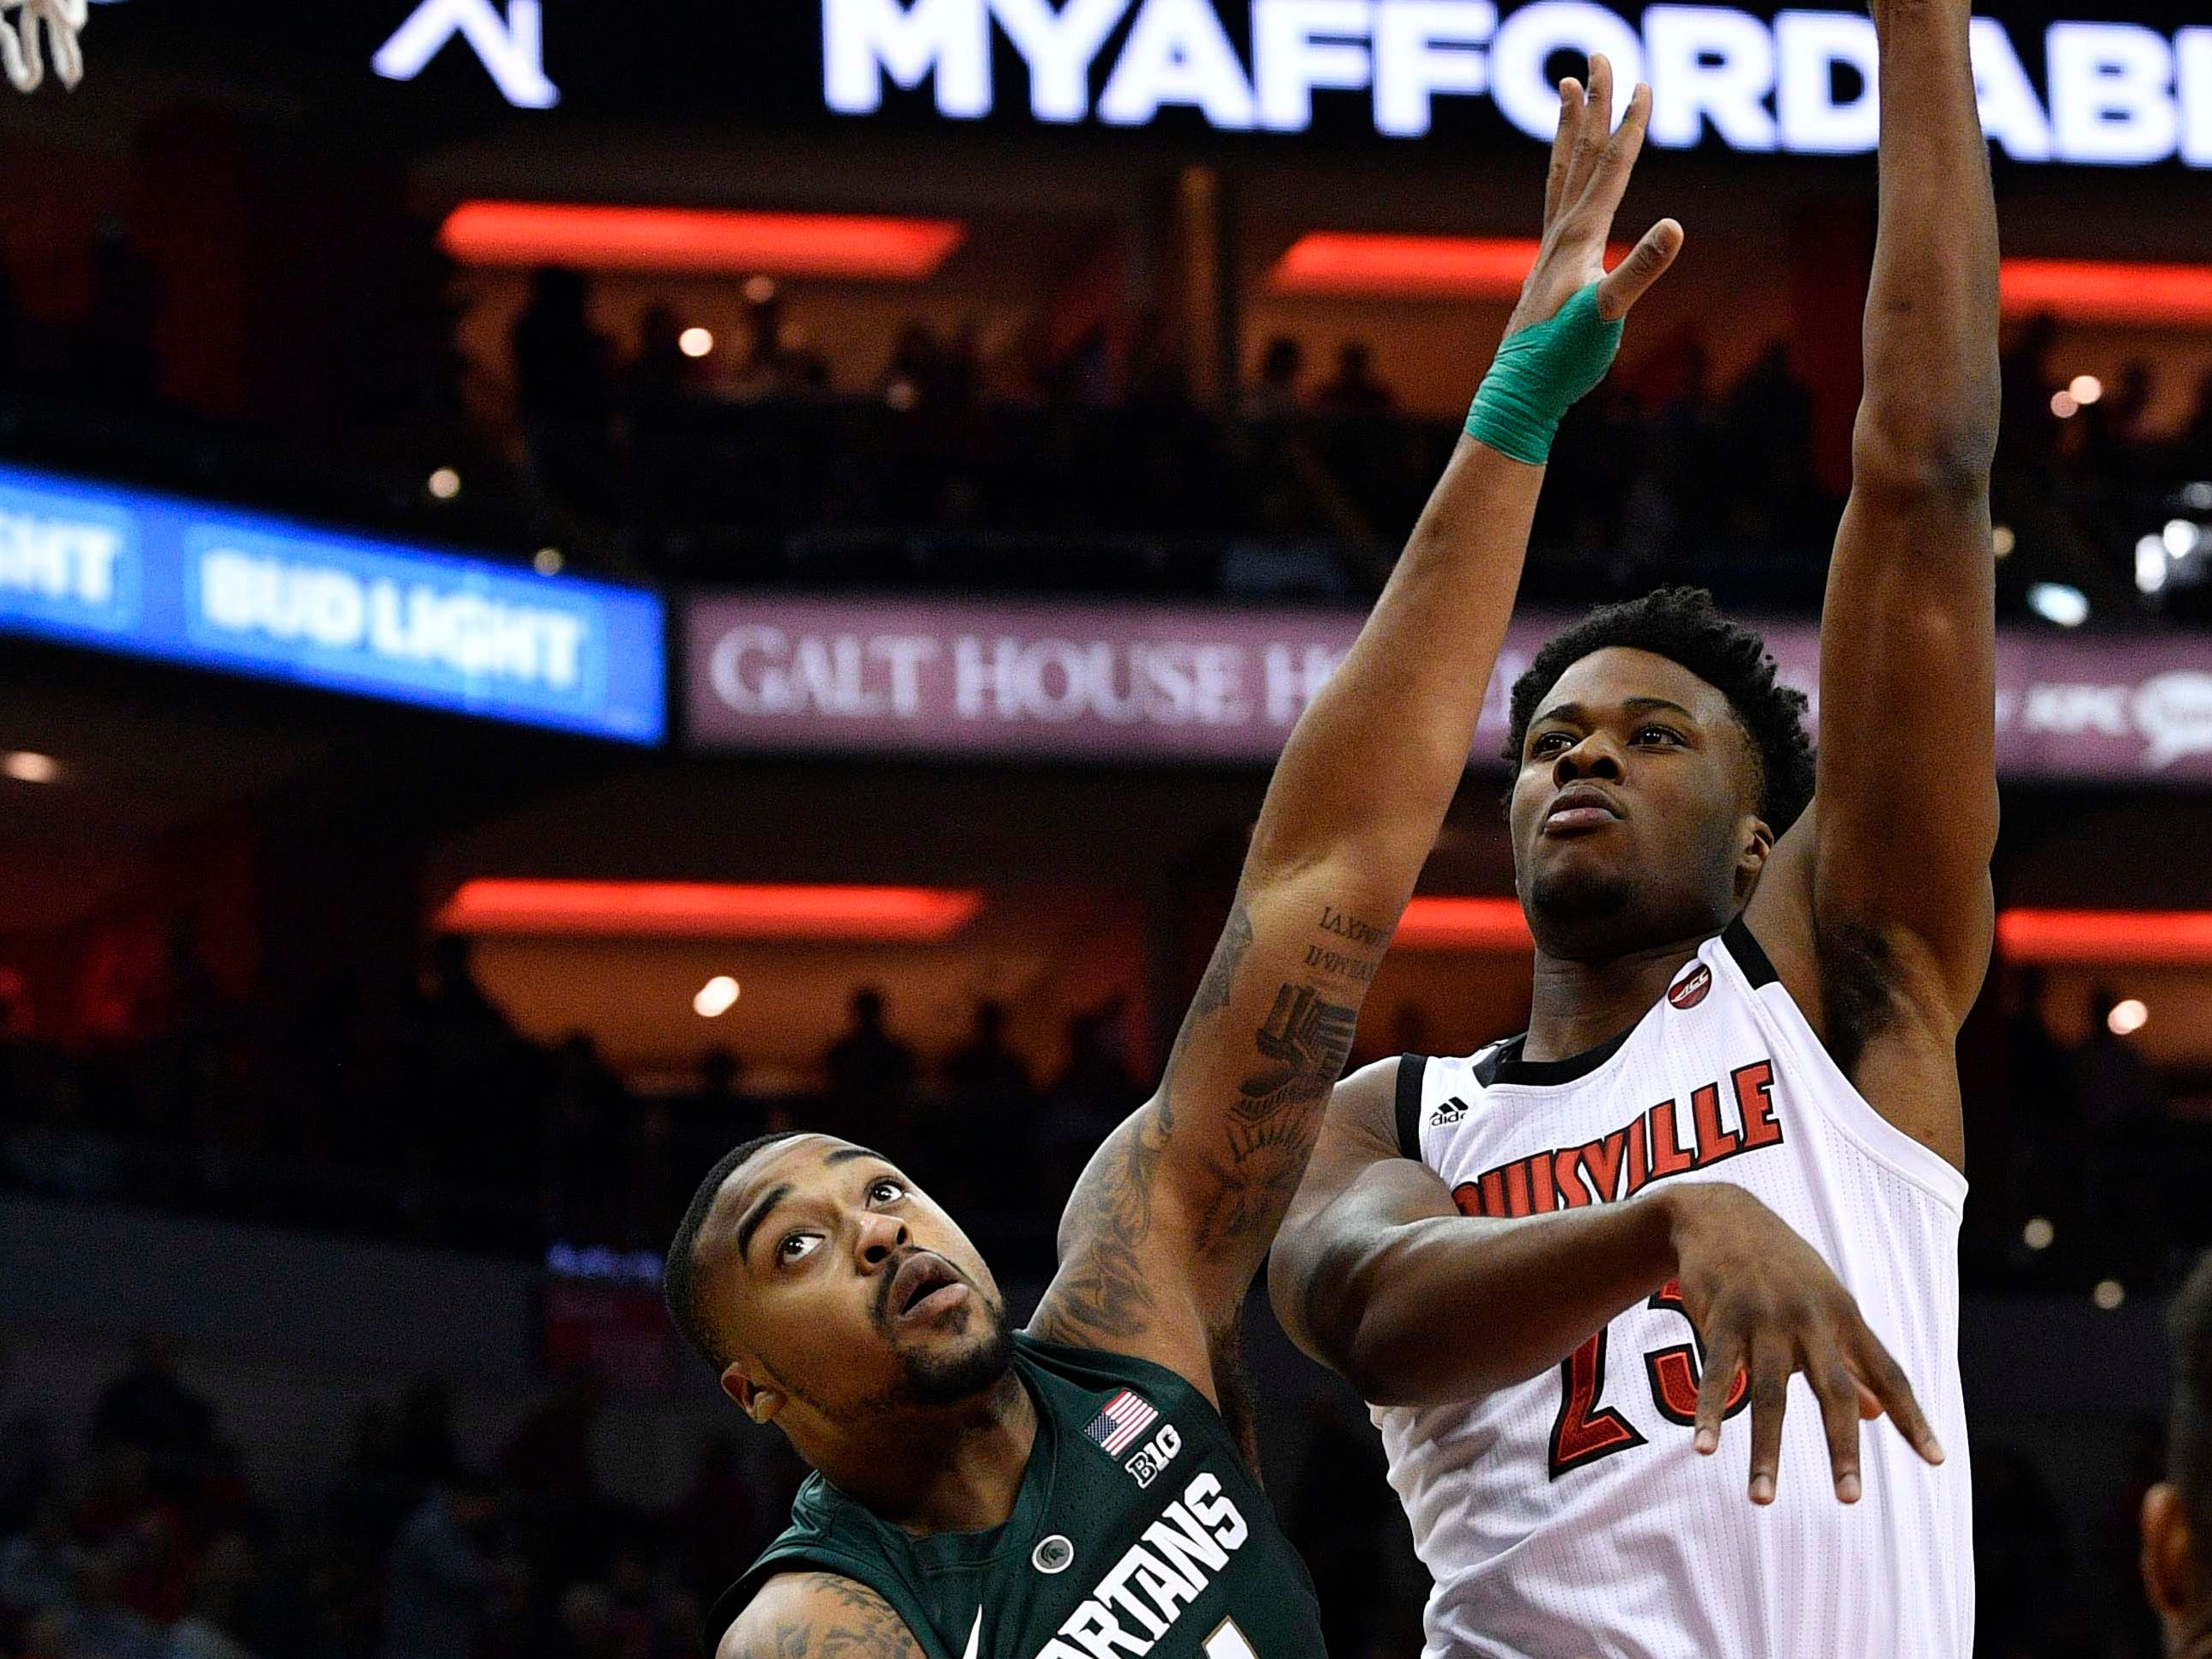 Louisville Cardinals center Steven Enoch (23) shoots against Michigan State Spartans forward Nick Ward (44) during the second half at KFC Yum! Center. Louisville defeated Michigan State 82-78.